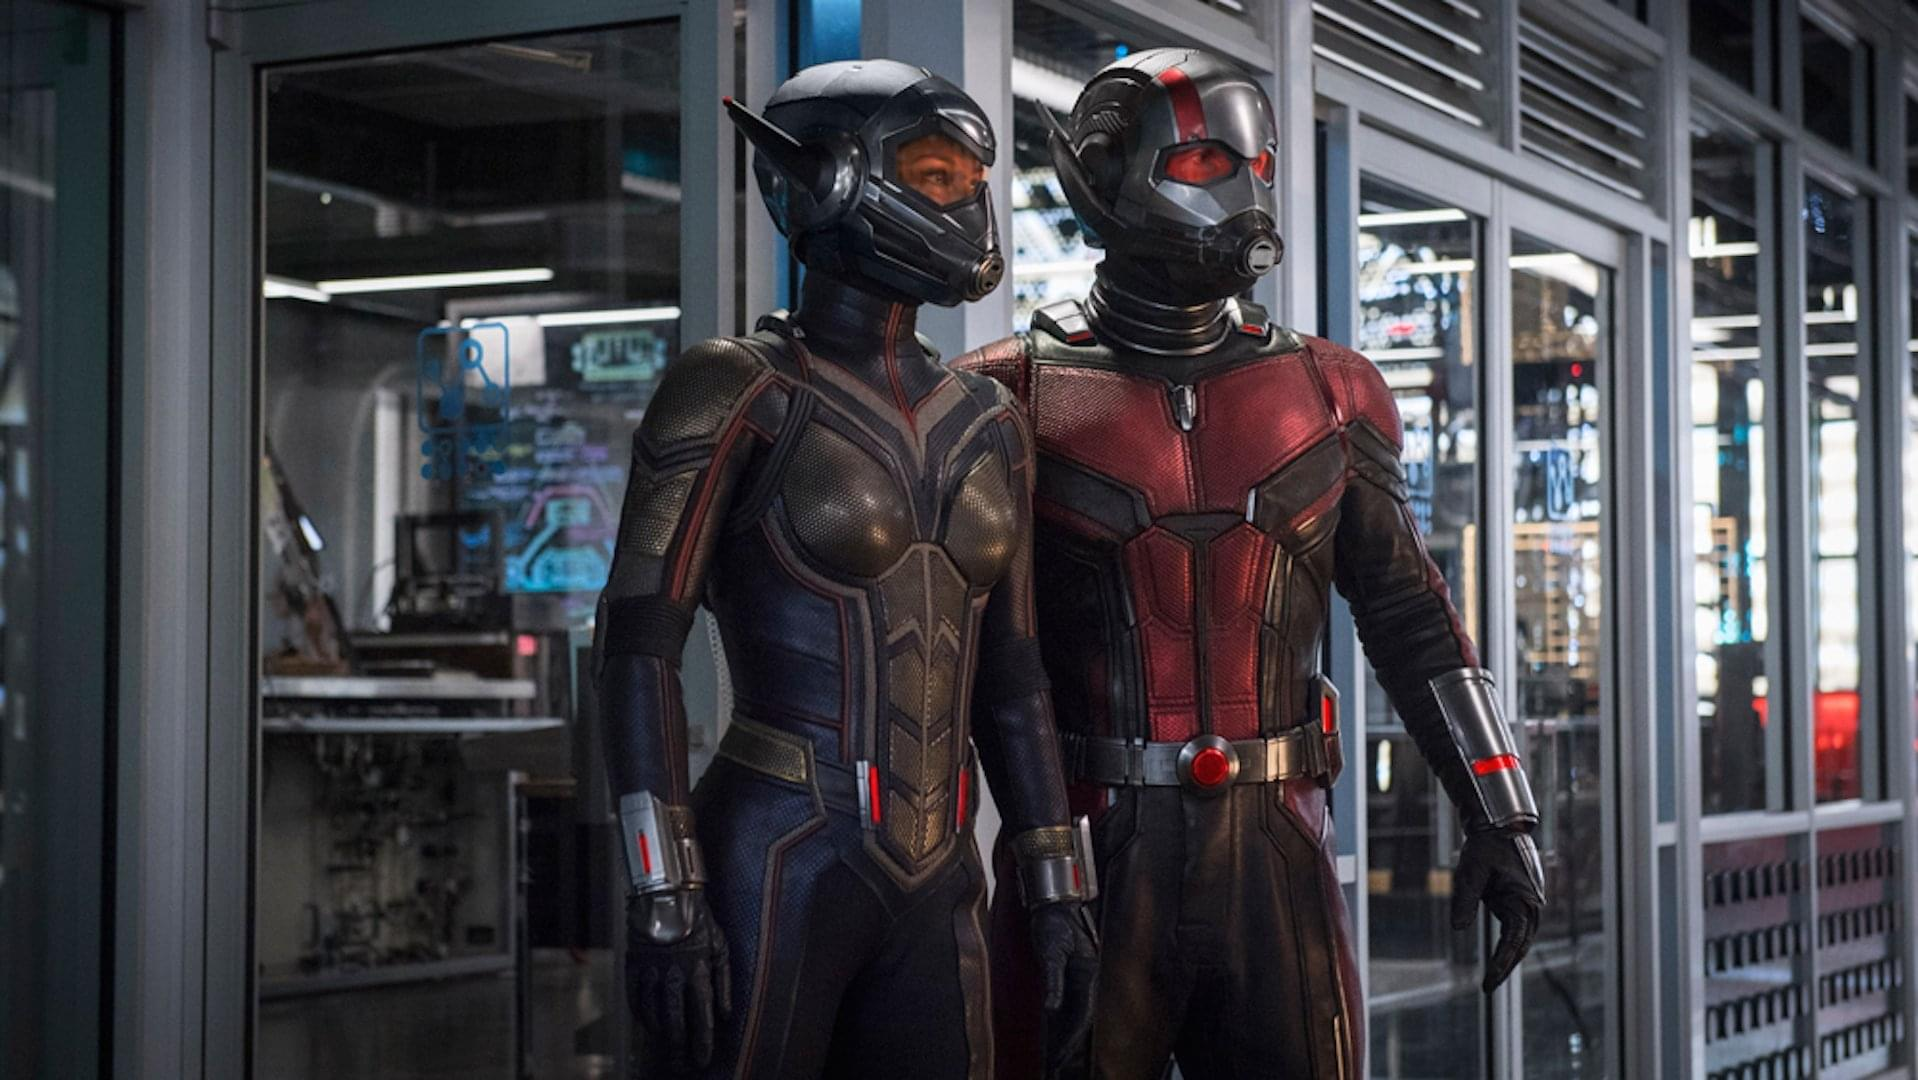 AT THE MOVIES:  'ANT-MAN AND THE WASP'